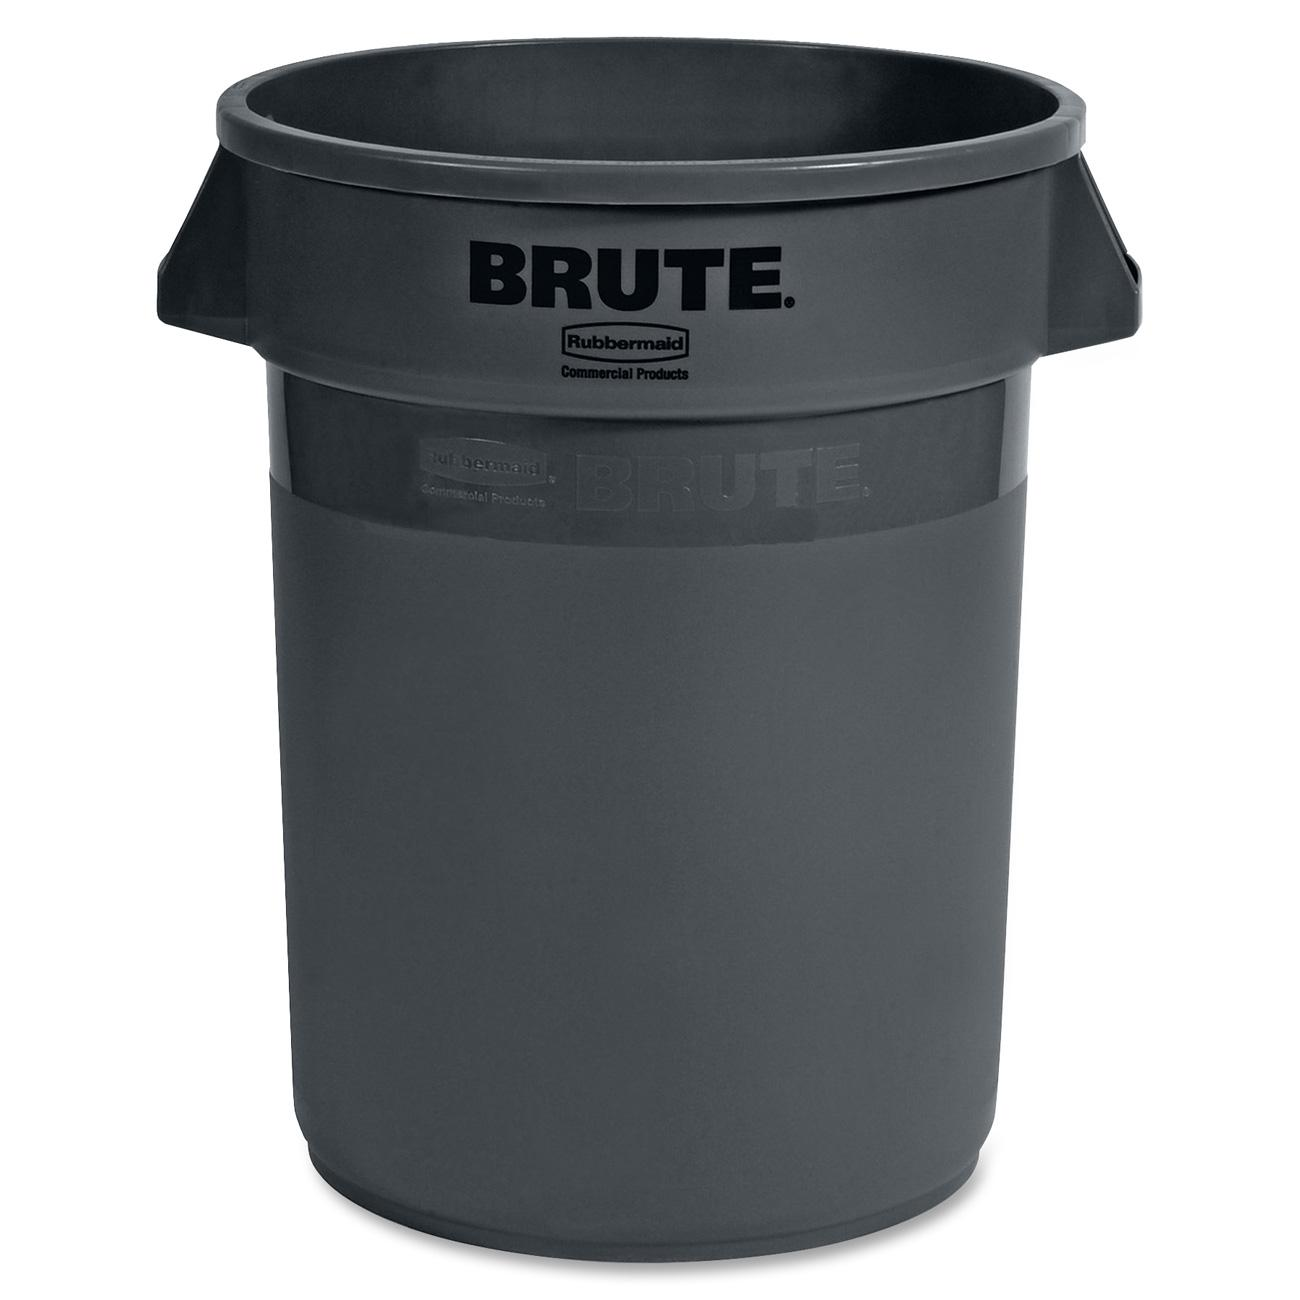 Rubbermaid Commercial FG263200GRAY Brute Heavy-Duty Round Container 32-gallon, Gray